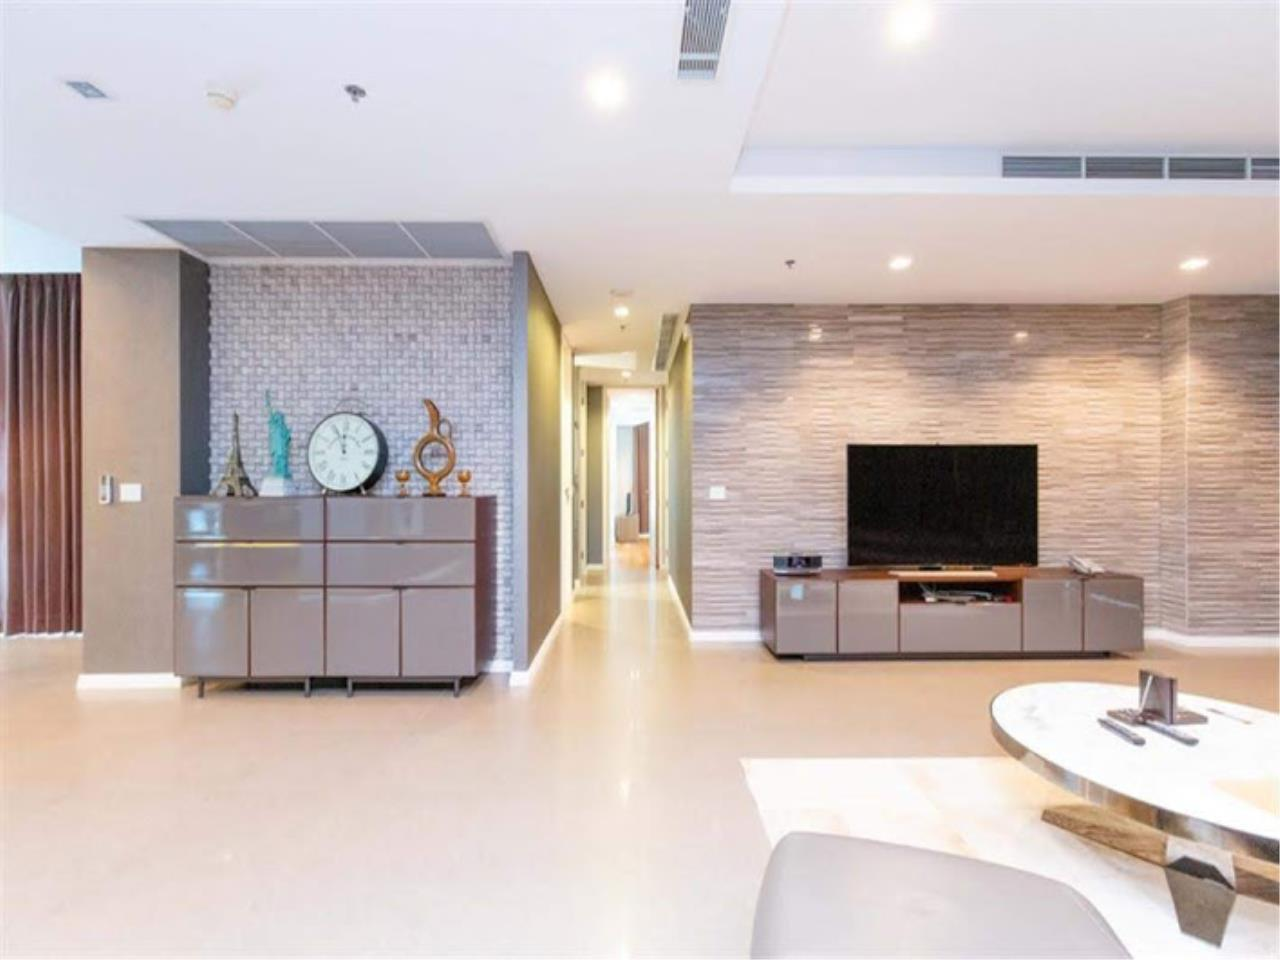 Bestbkkcondos Agency's The River - 233,8 sqm - For Sale : 52 000 000 THB - 3 Bedrooms 18